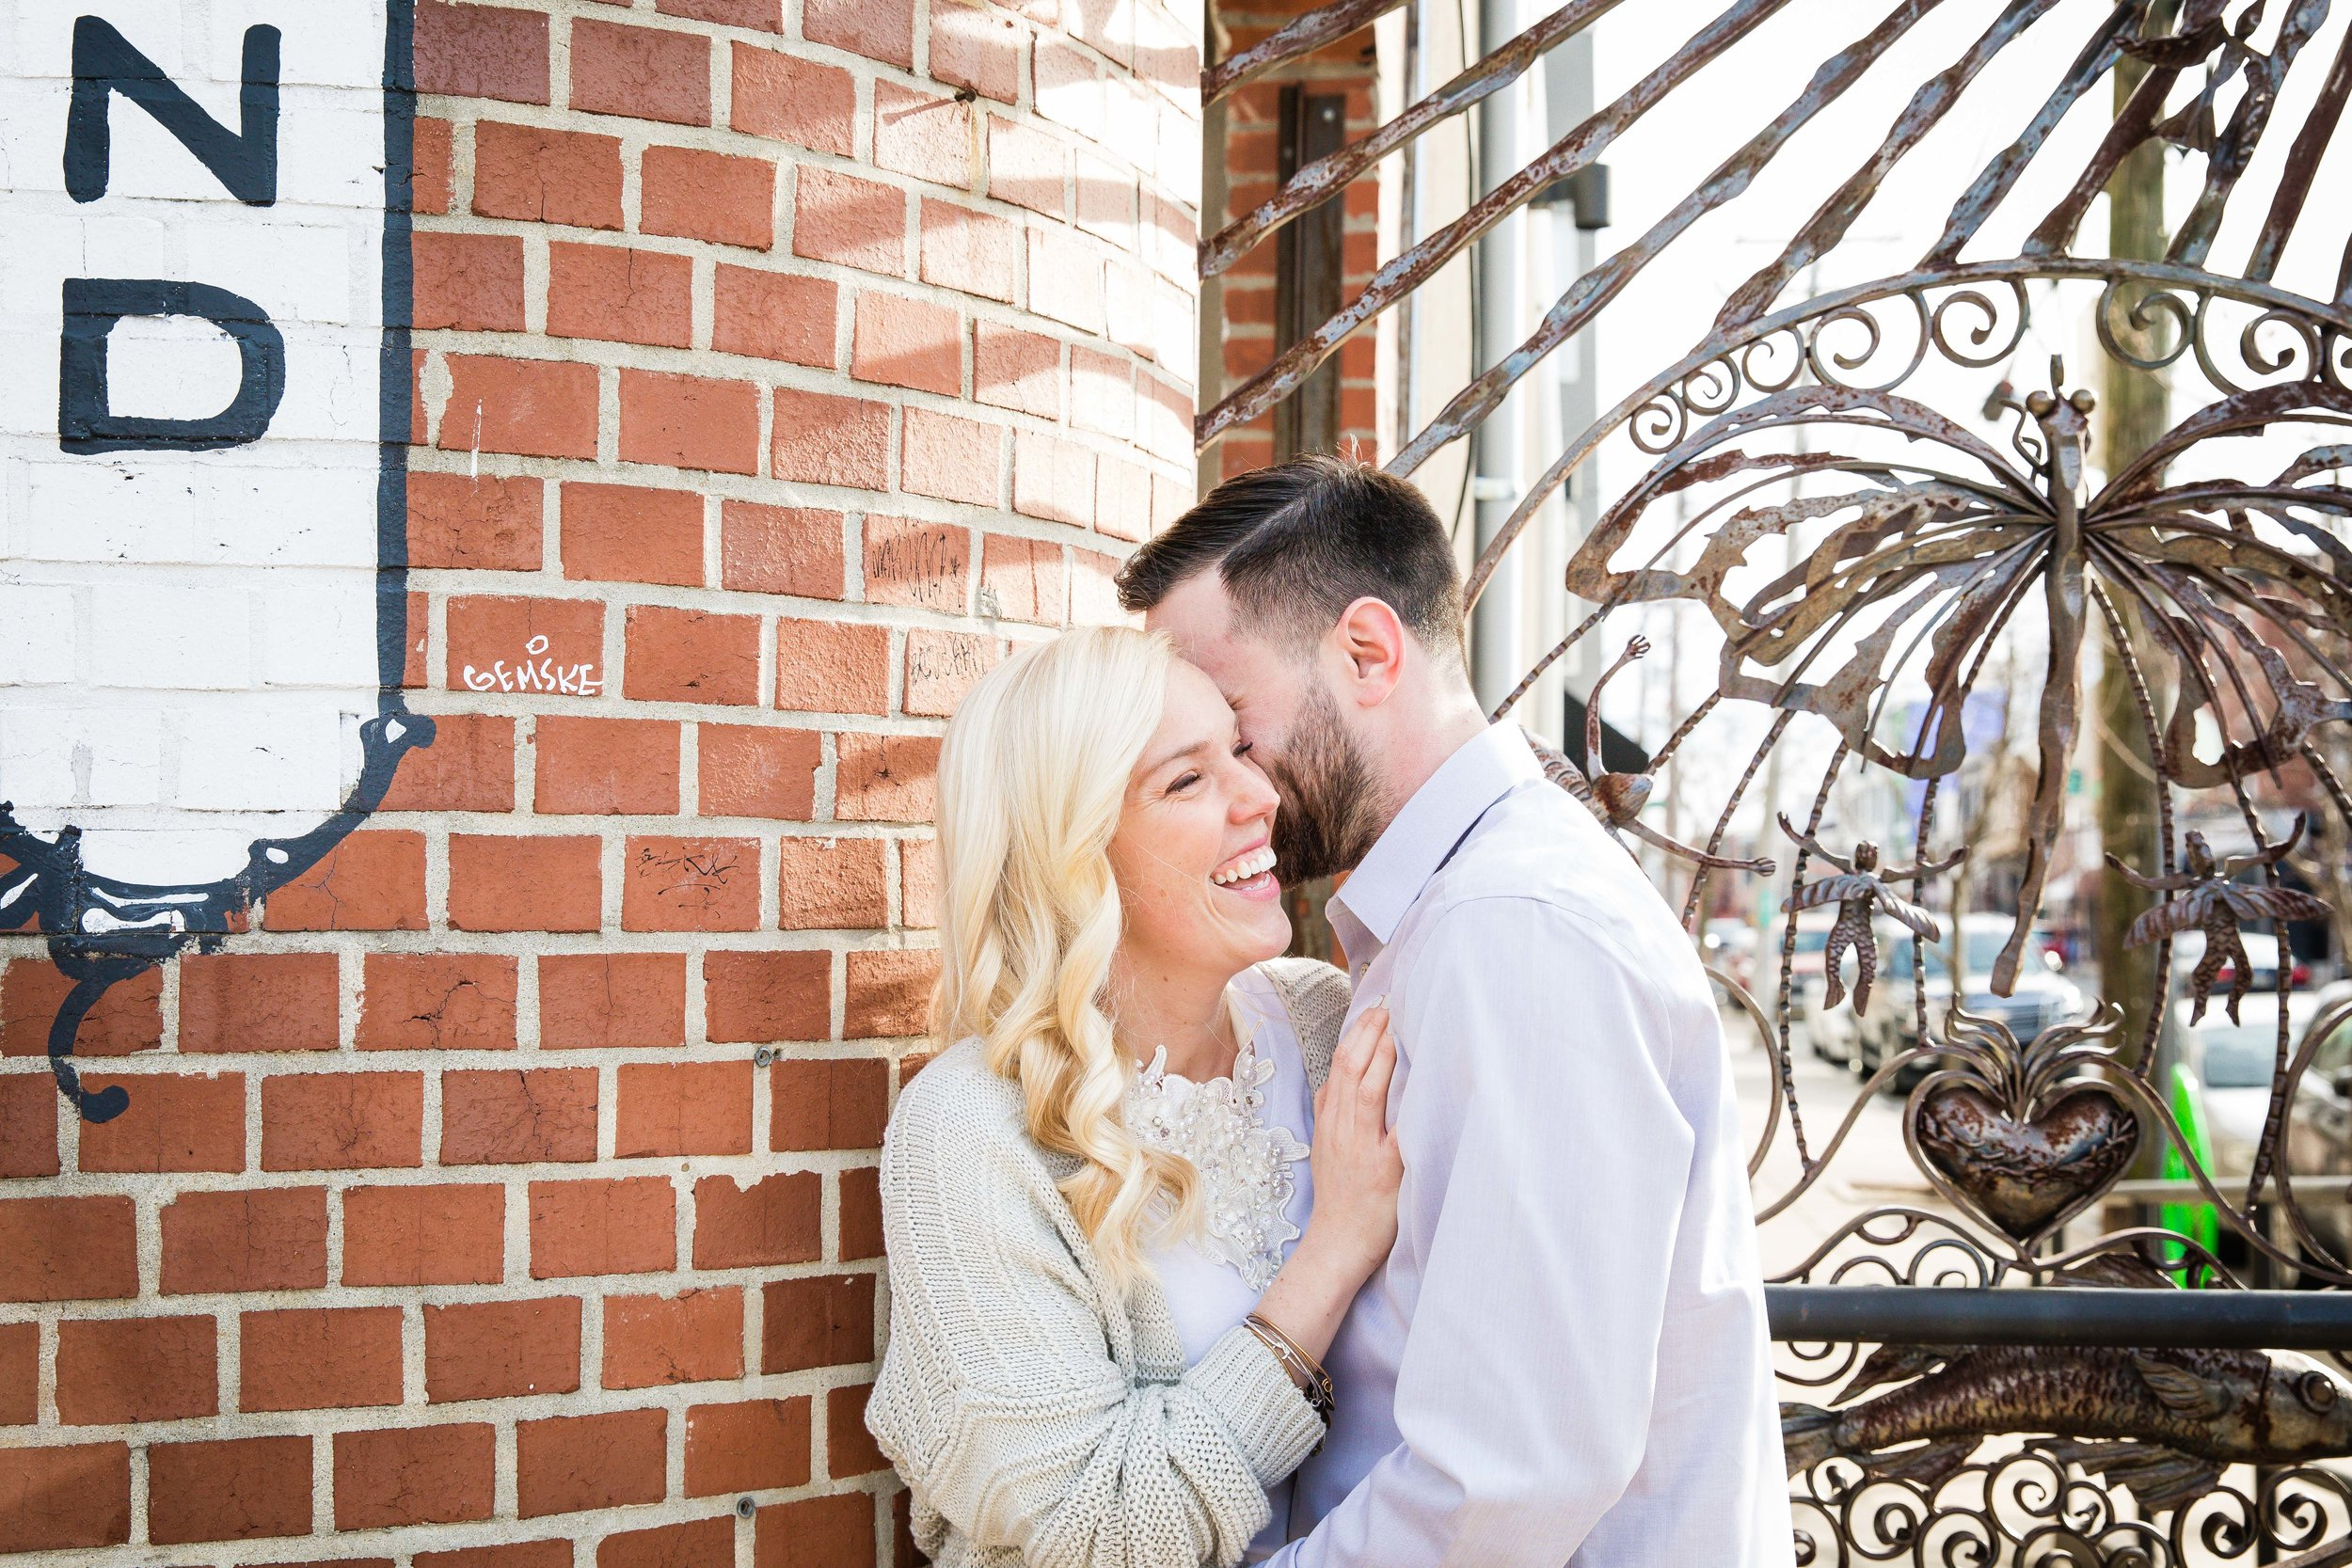 Nick and Jamie - Fishtown Engagement Photos-011.jpg